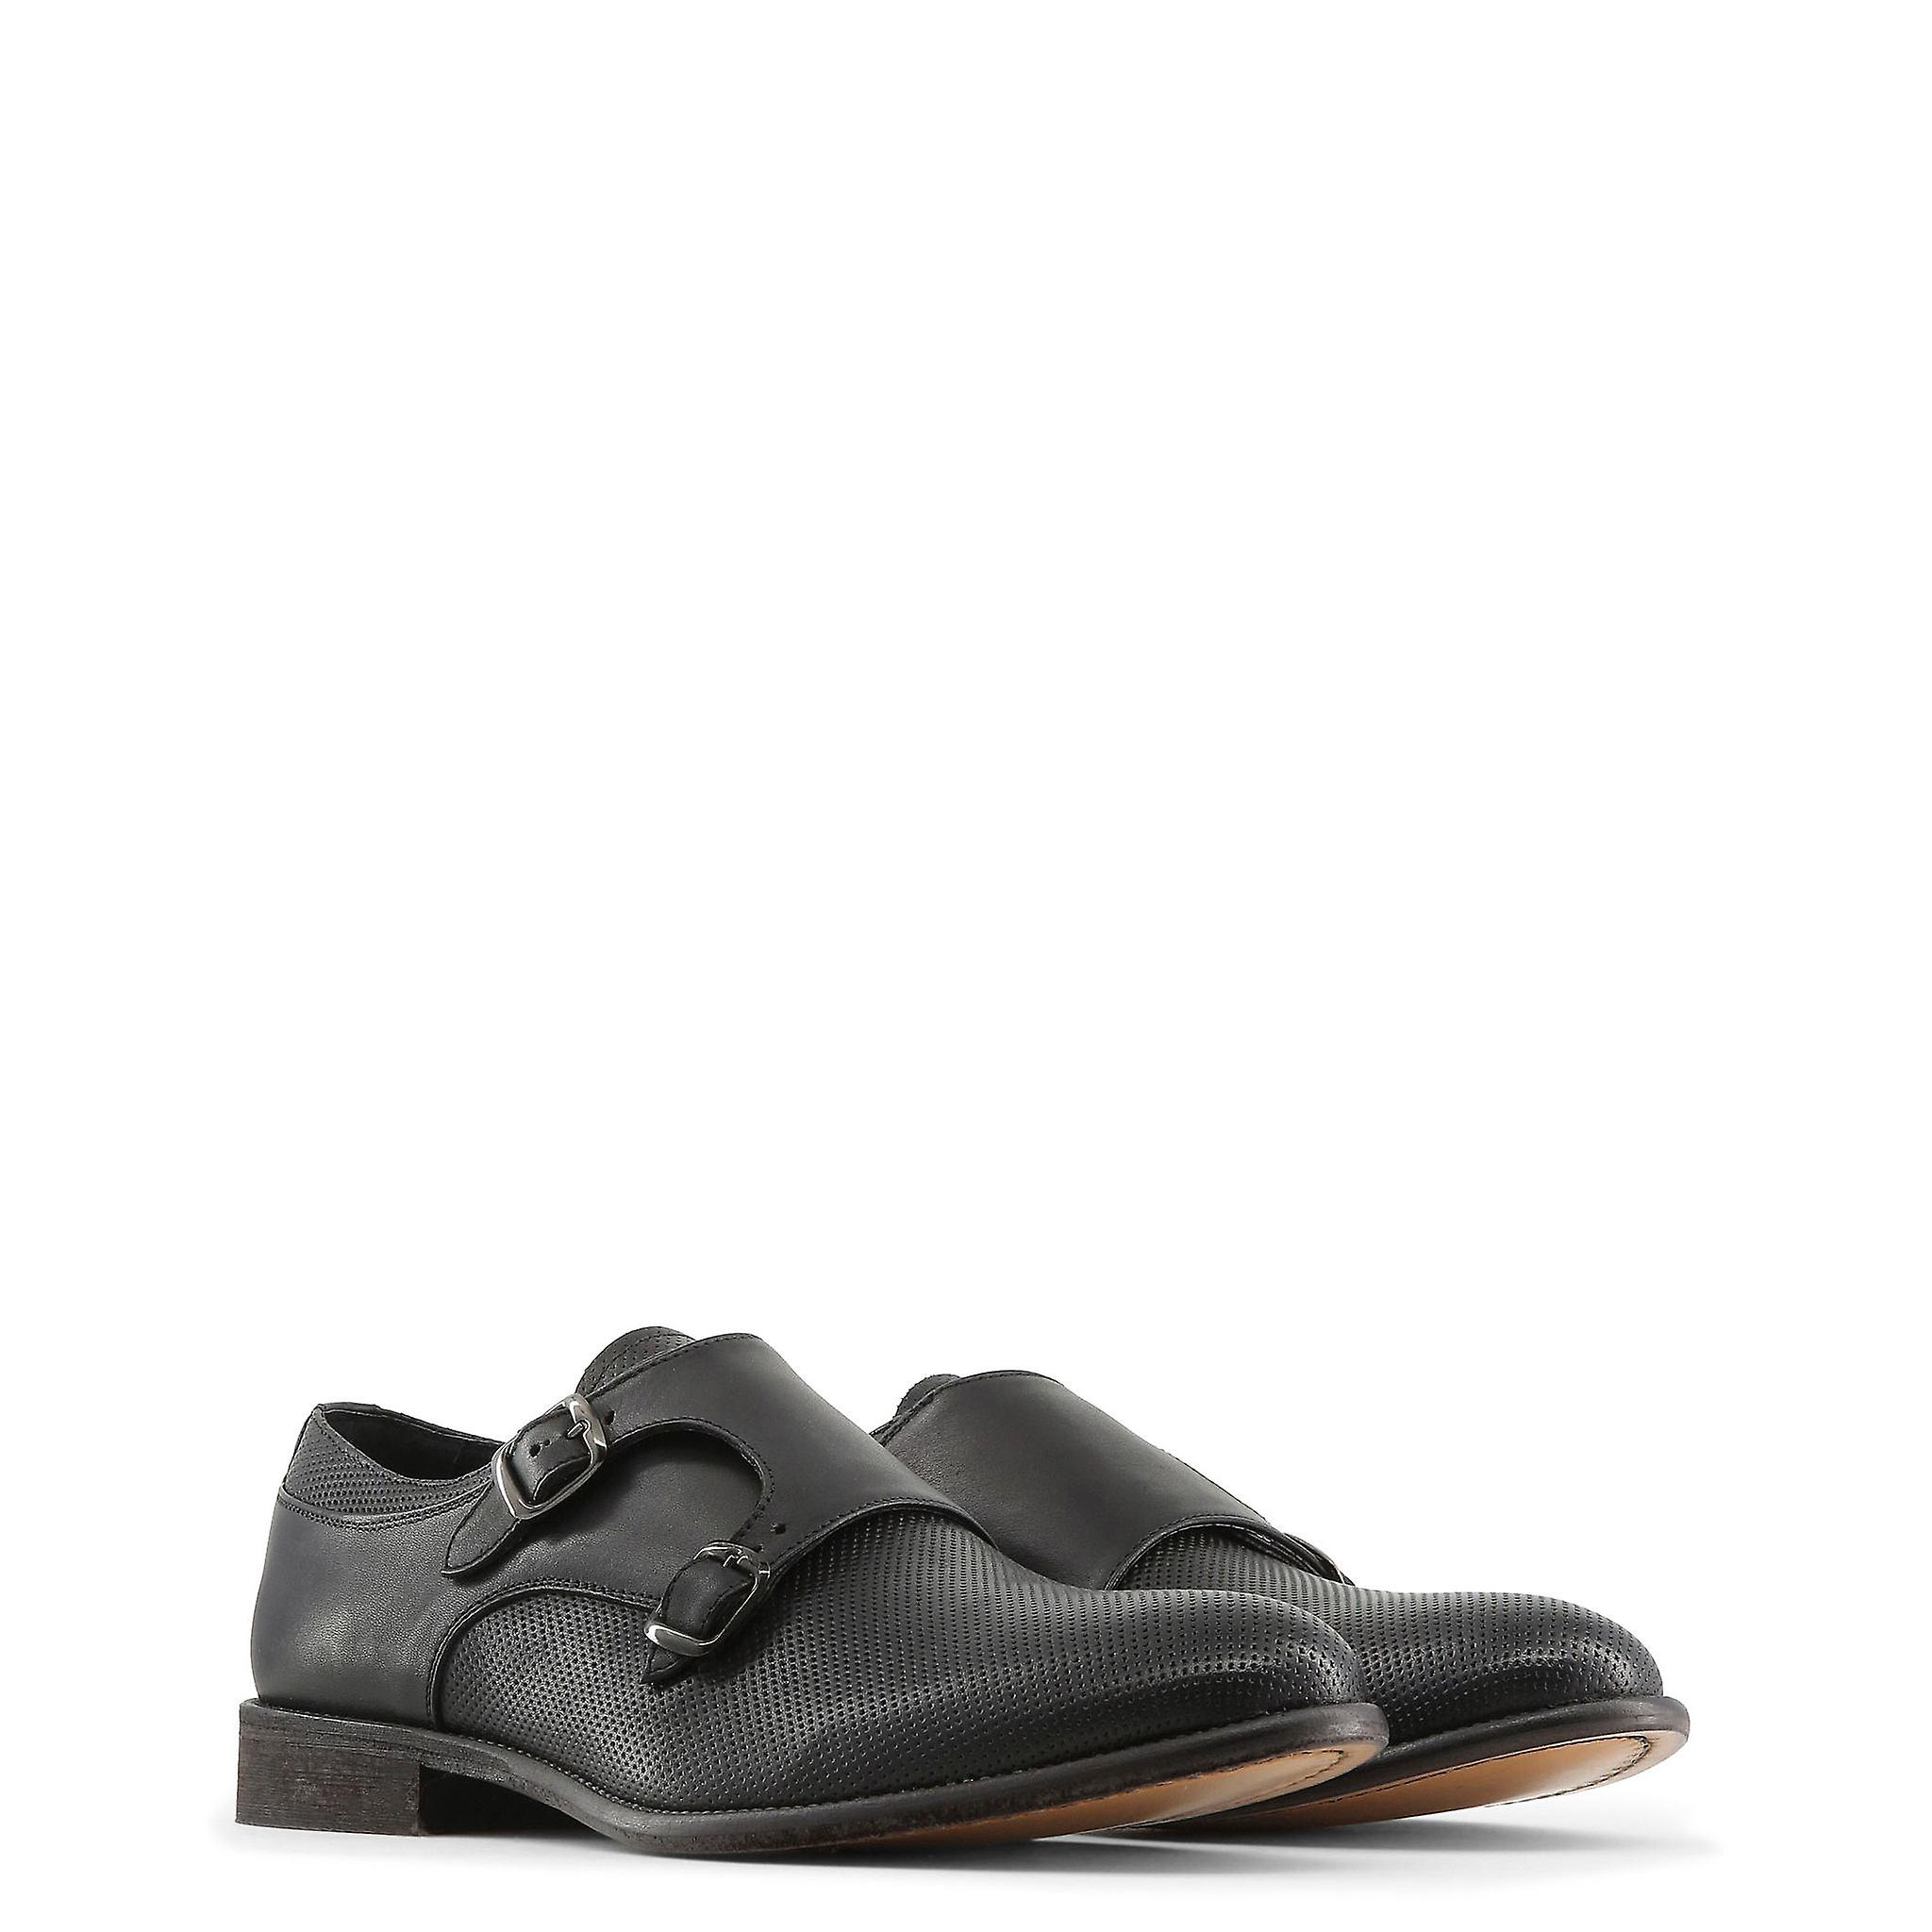 Made in Italia - CELSO Men's Flat Shoe